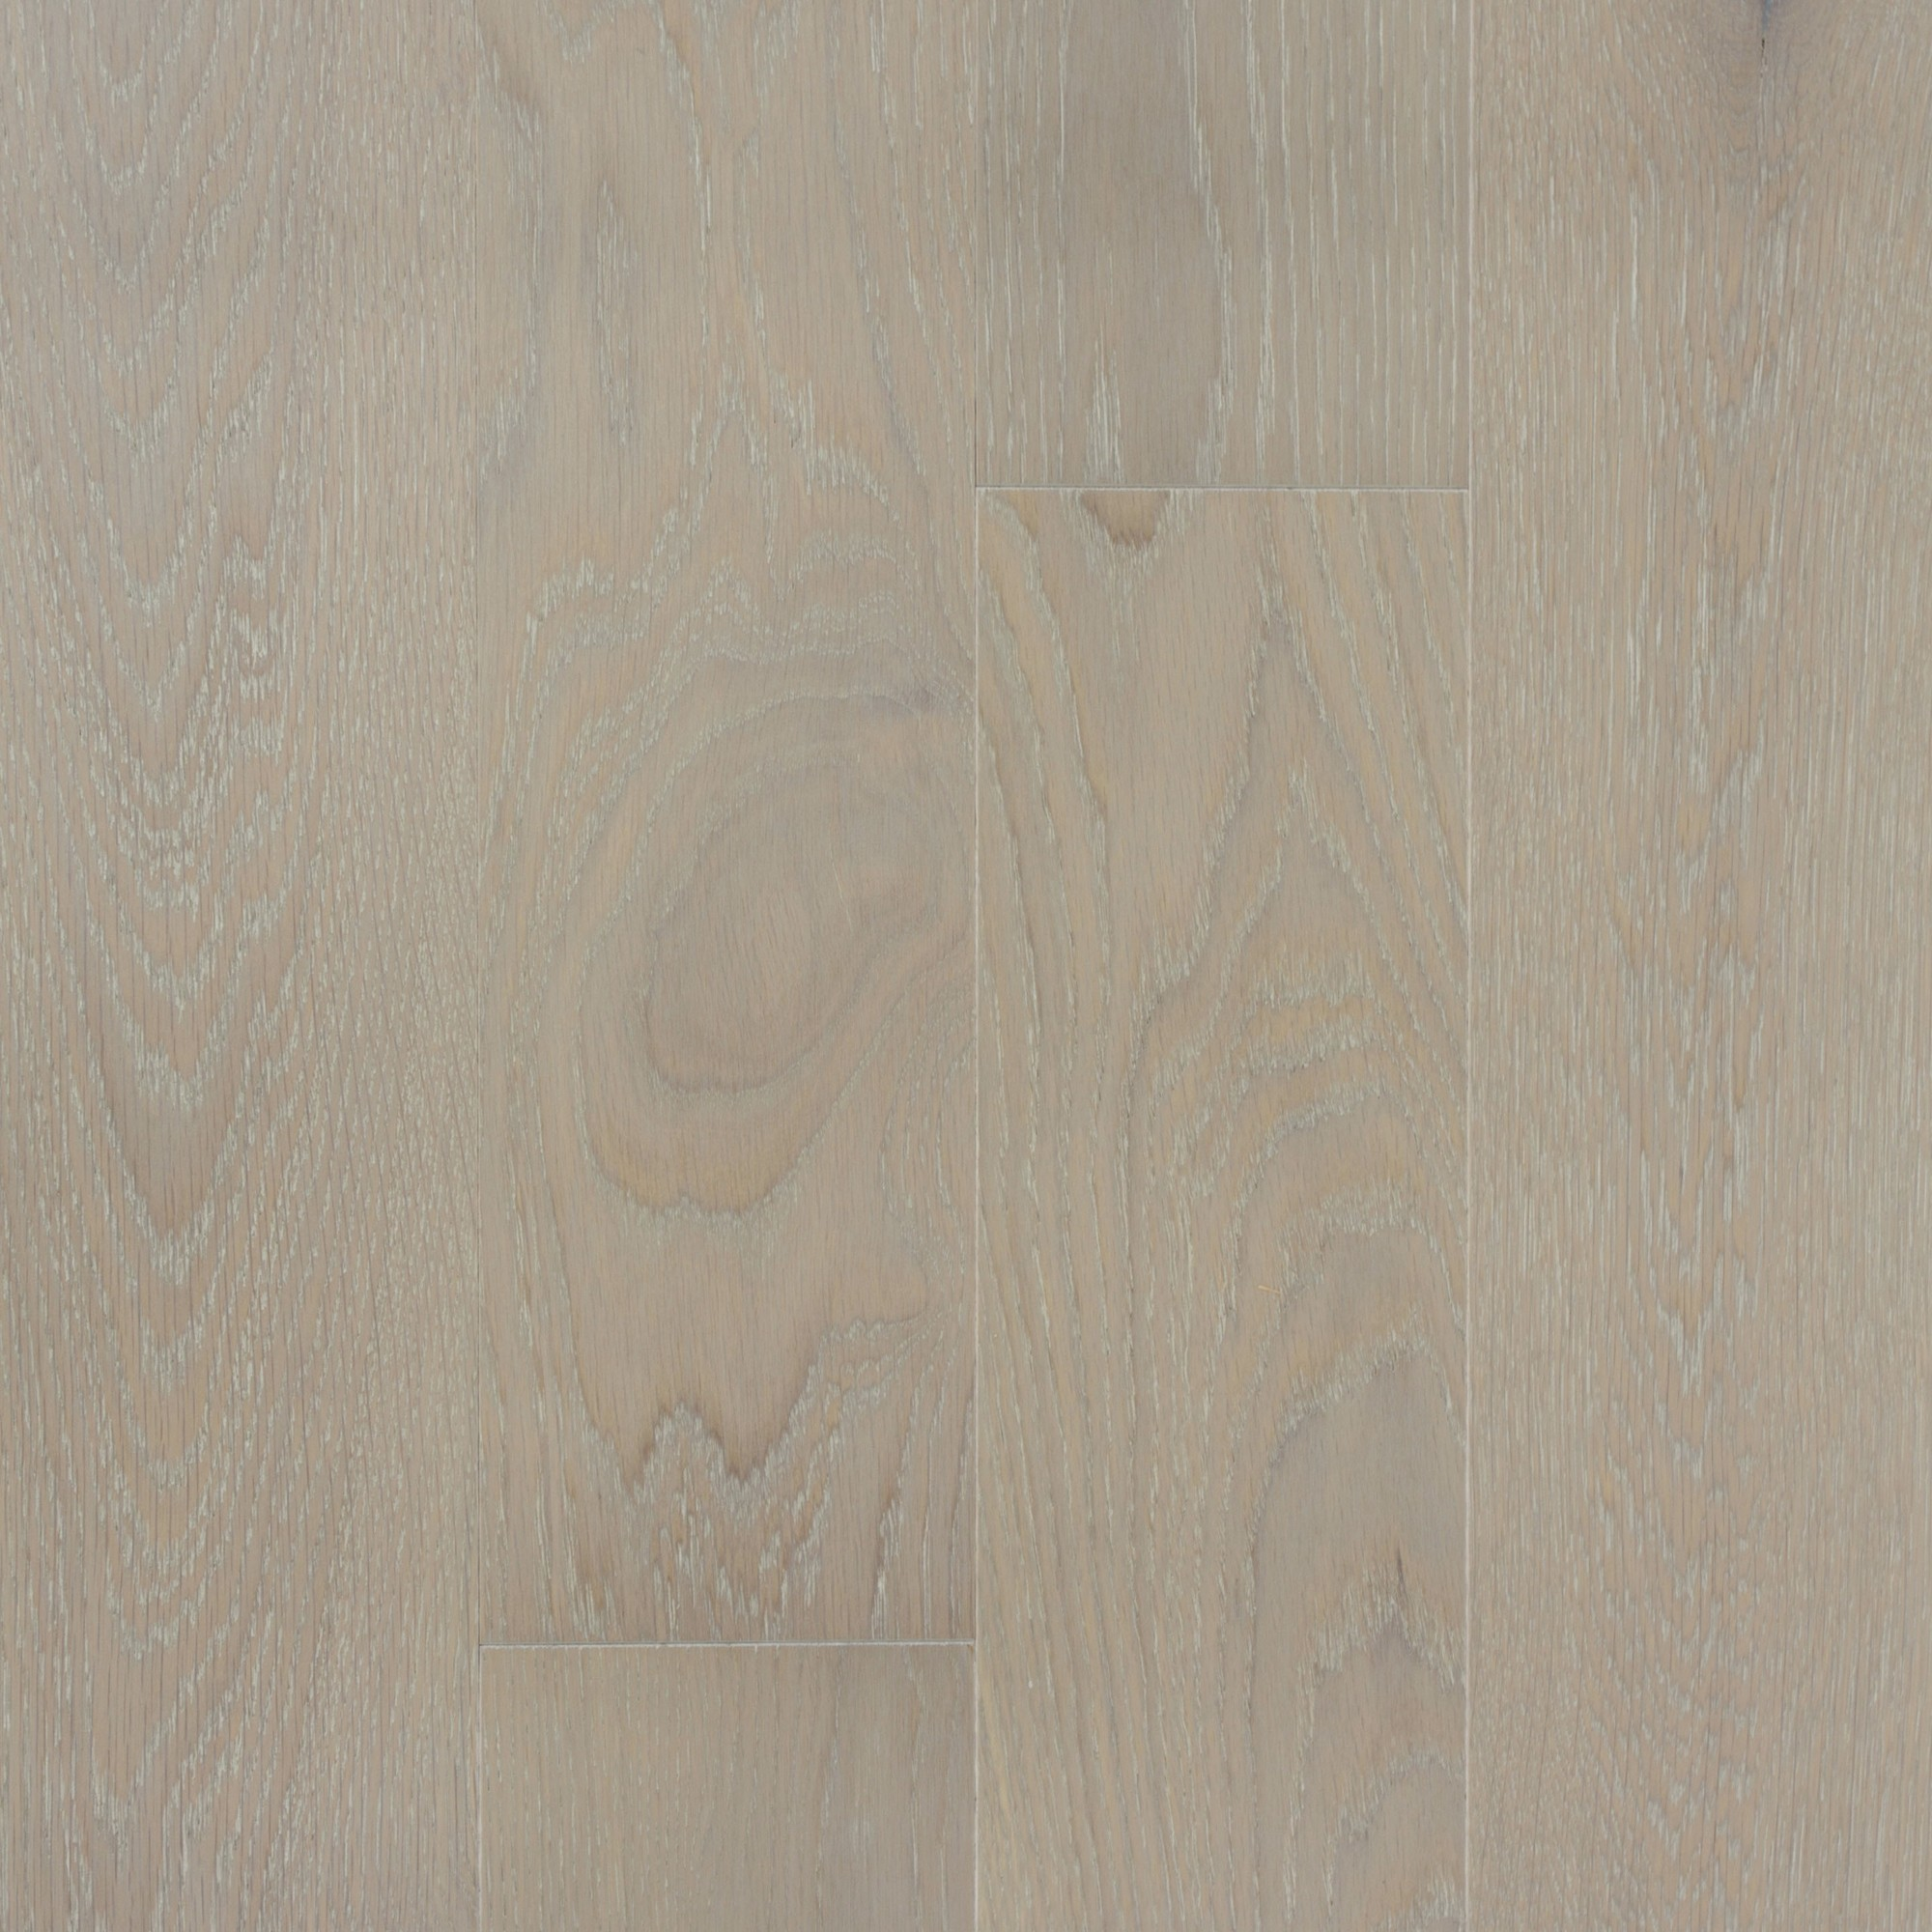 Wire Brushed White Oak Atlantis Vintage Hardwood